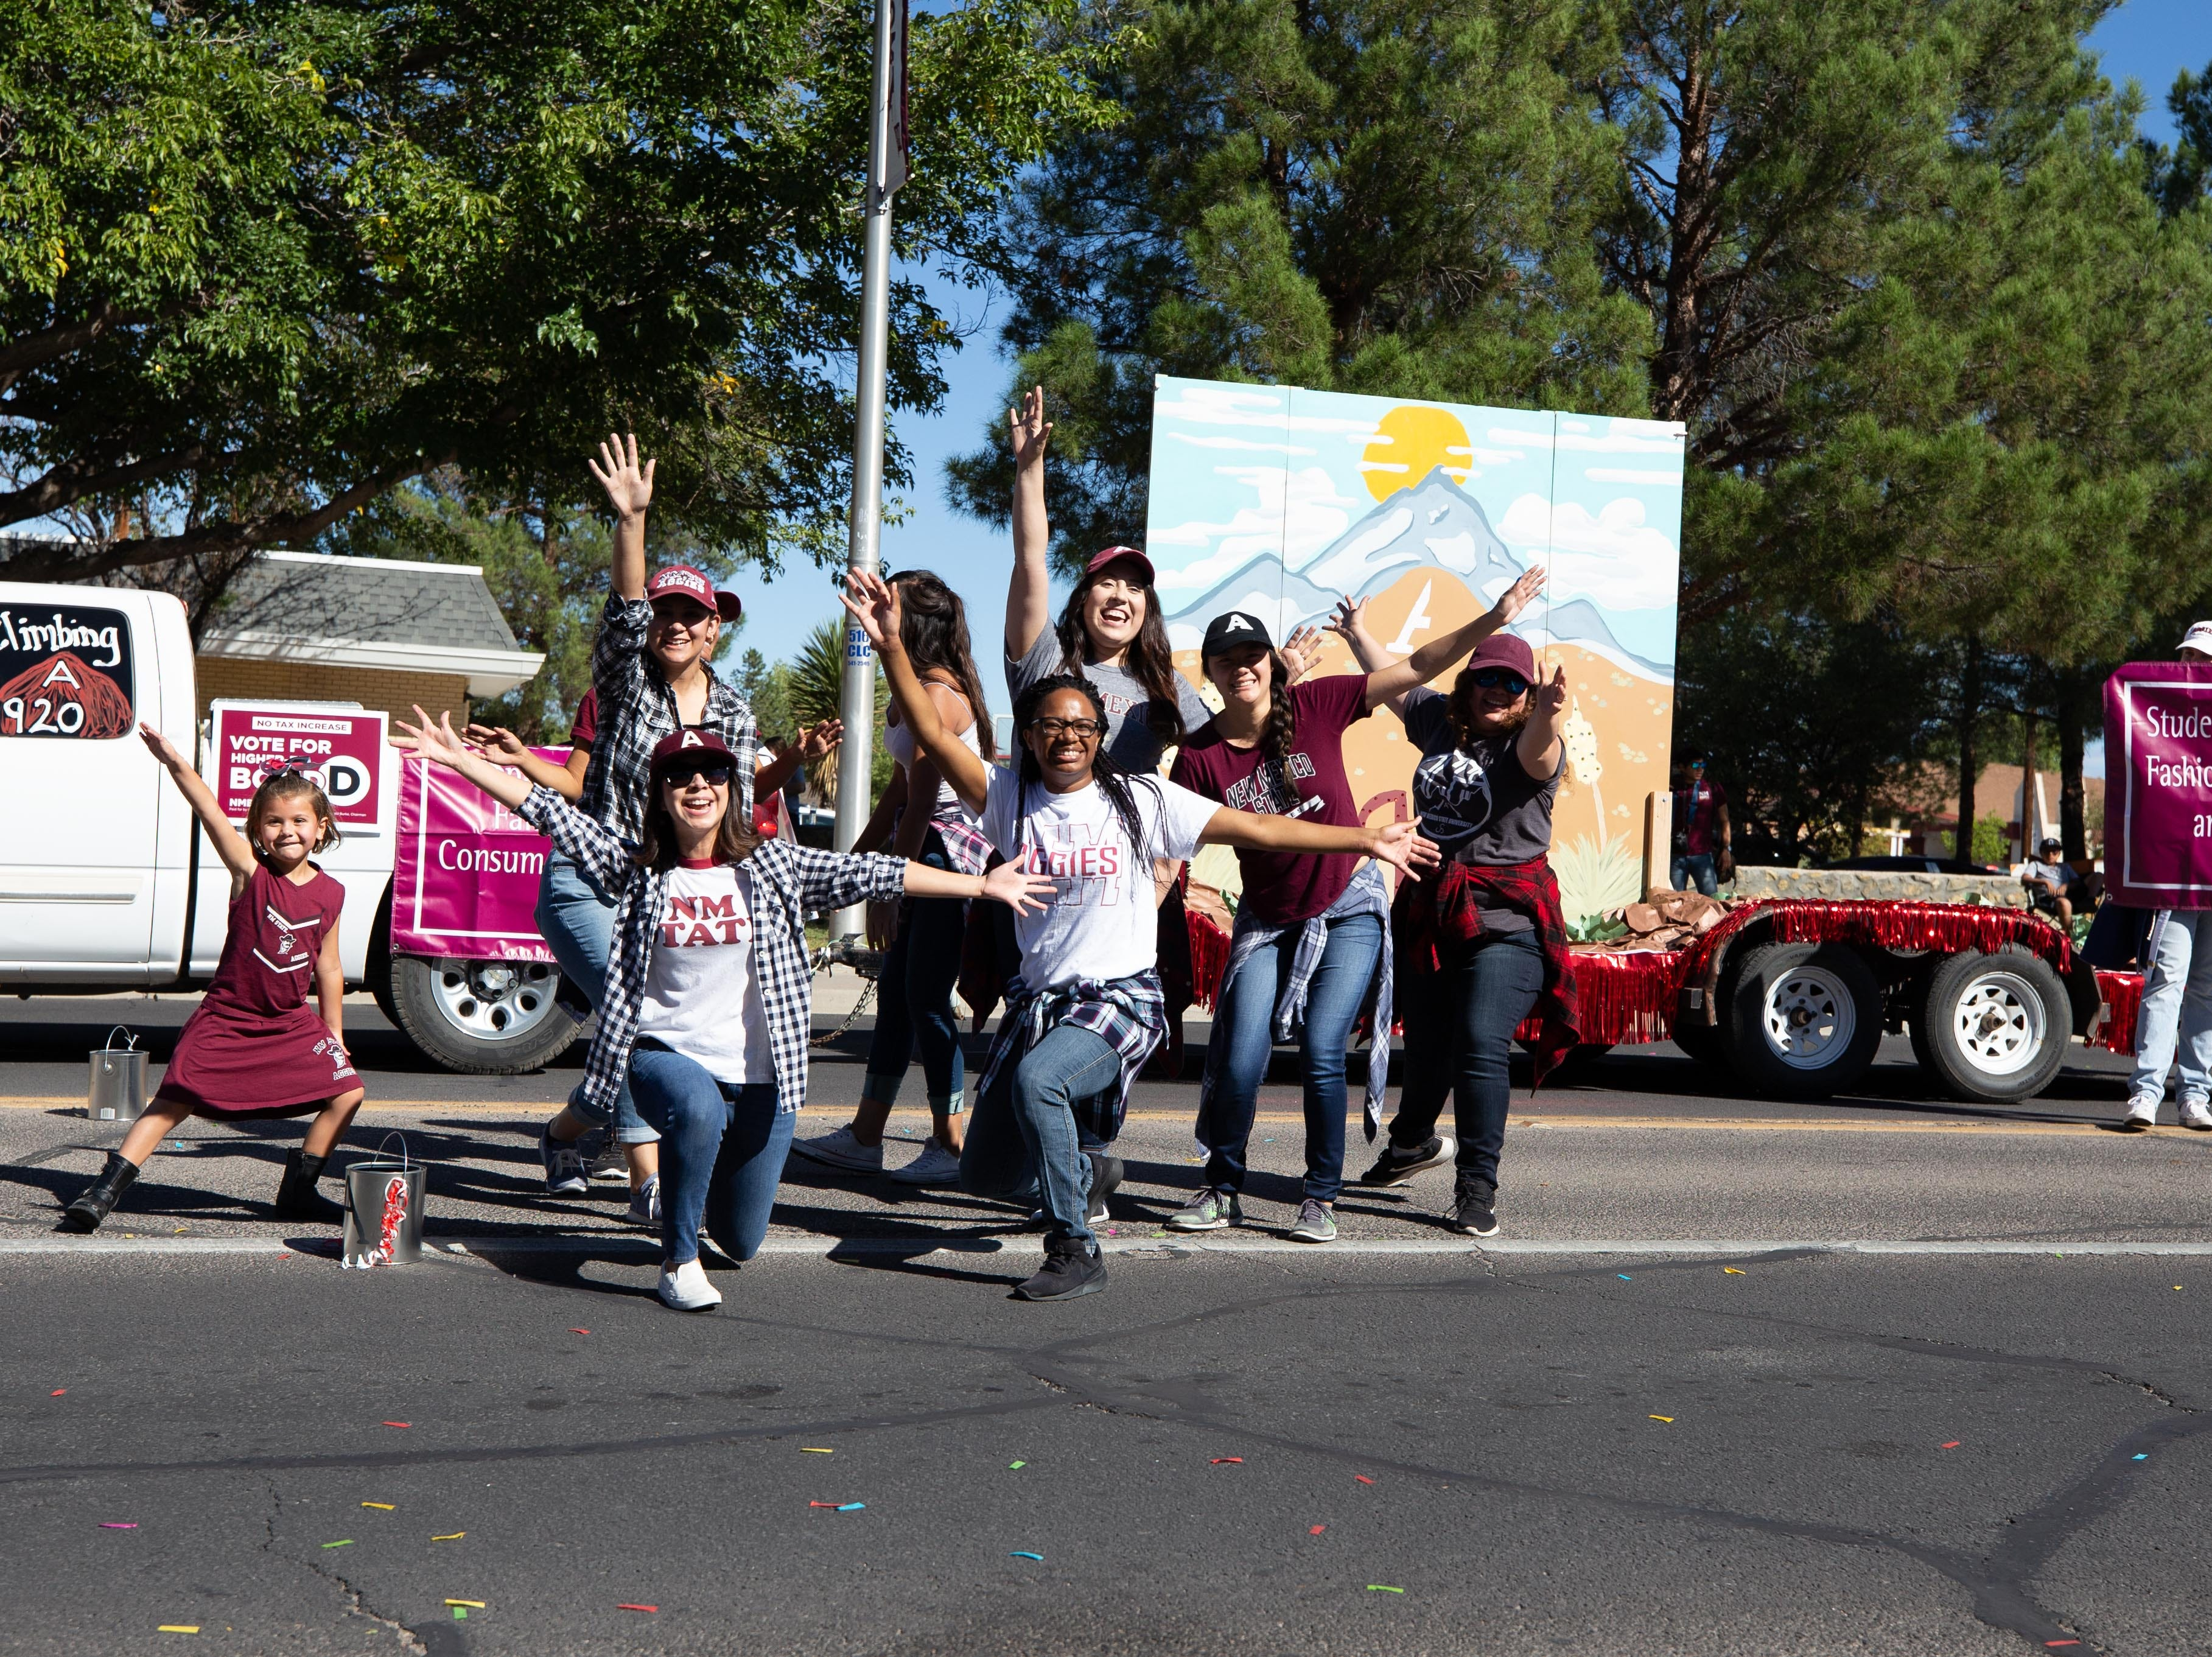 Student Association of Fashion Merchandising and Marketing float and participants at the NMSU Homecoming Parade on October 6, 2018.